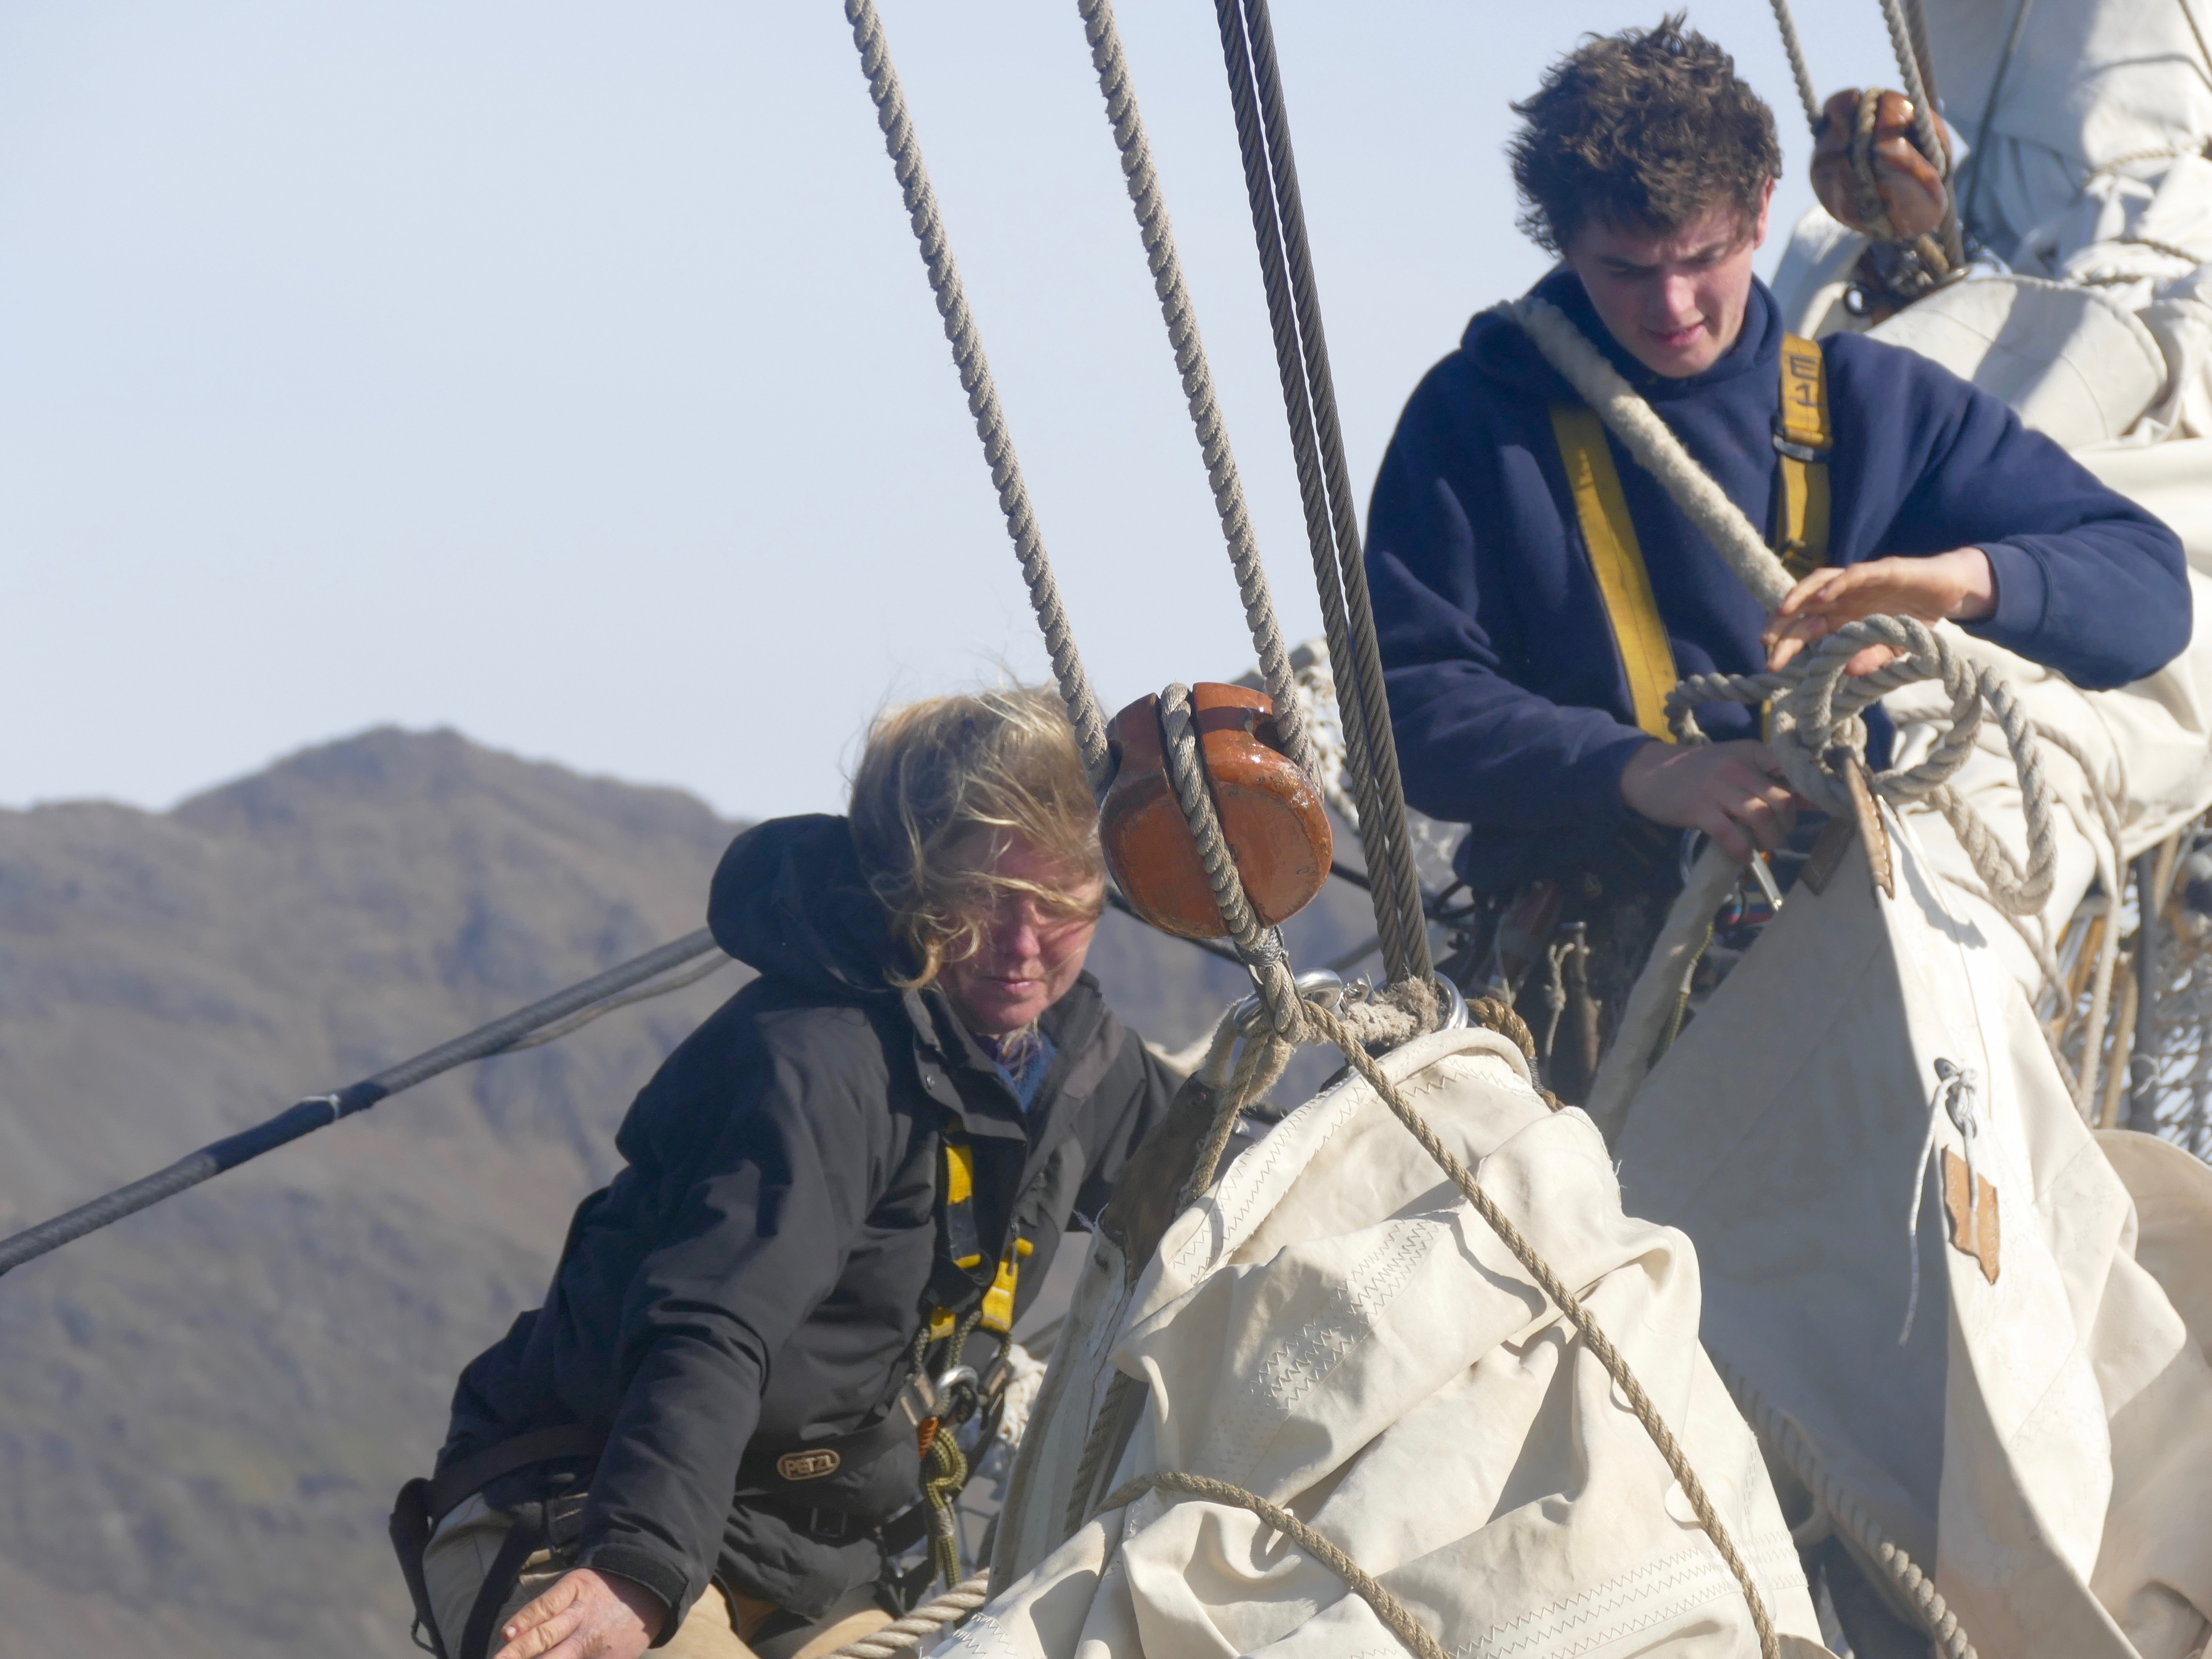 Megan and Toby fixing the headsails as we arrive in Stromness from Fortuna Bay